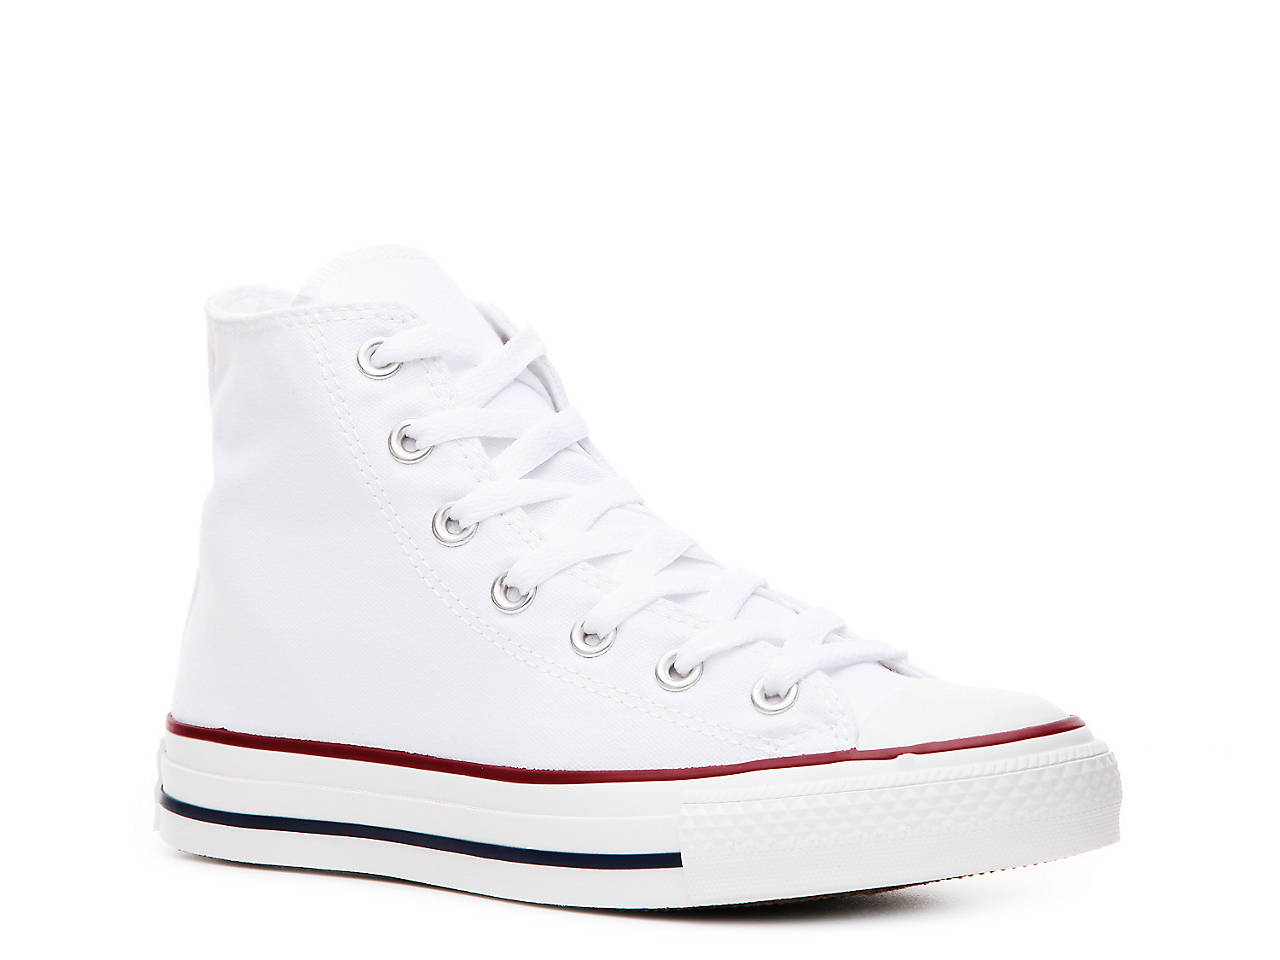 Converse Chuck Taylor All Star High-Top Sneaker - Women s Women s ... cb0d901a2